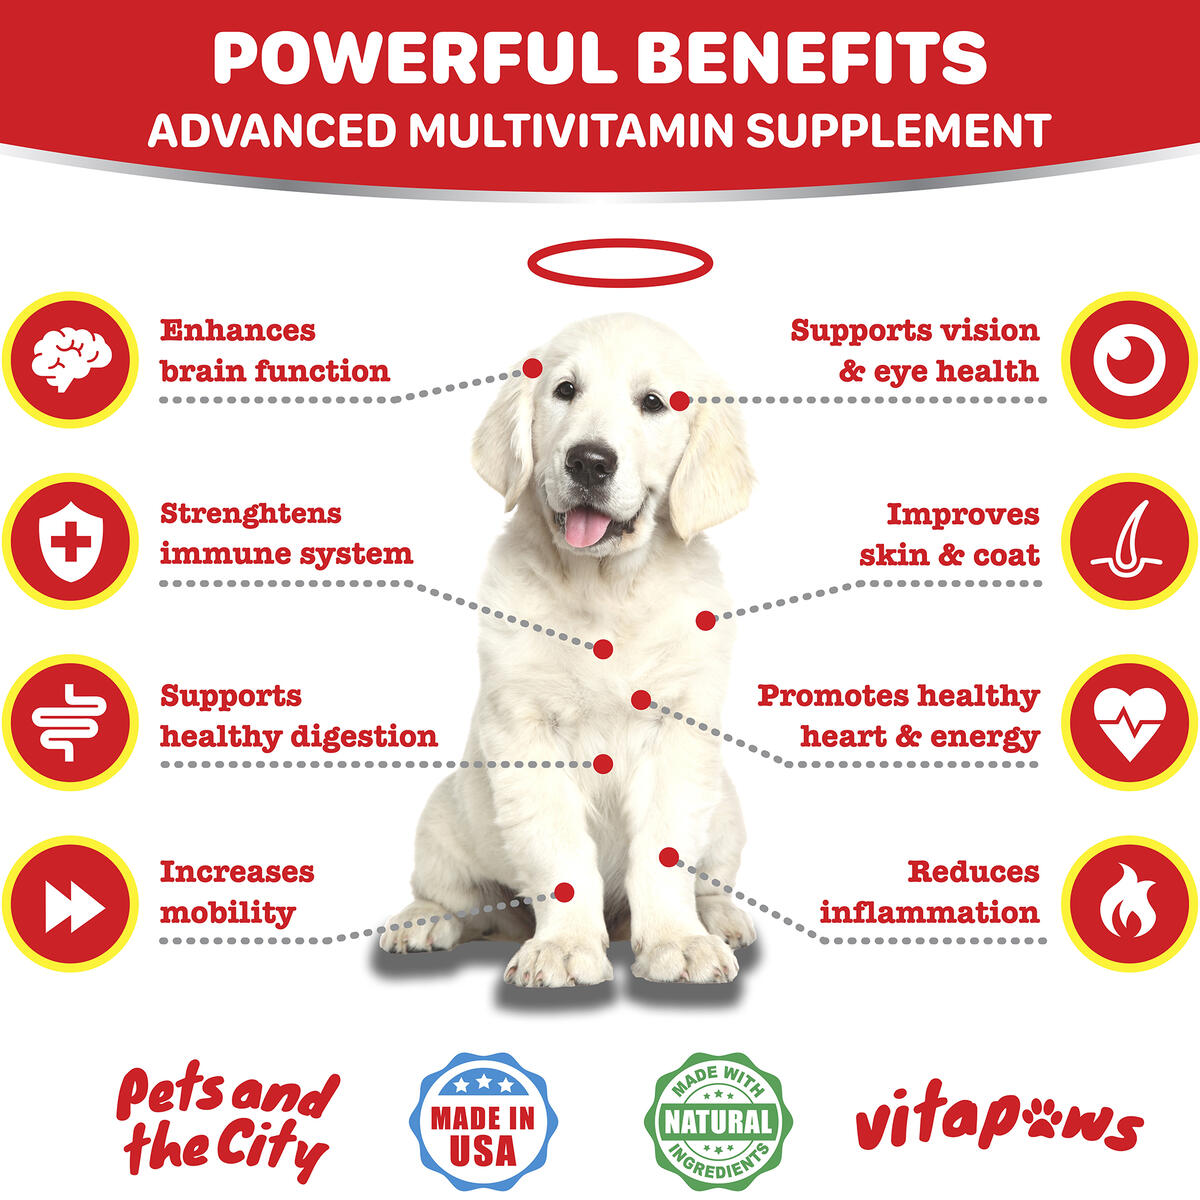 Dog Multivitamin with Hemp Oil - Dog Vitamins - Omega 3 Fish Oil for Dogs - Energy, Joint Support, Skin & Coat, Immune System, Brain - Natural Probiotics for Digestion - 120 Bacon Flavor Treats